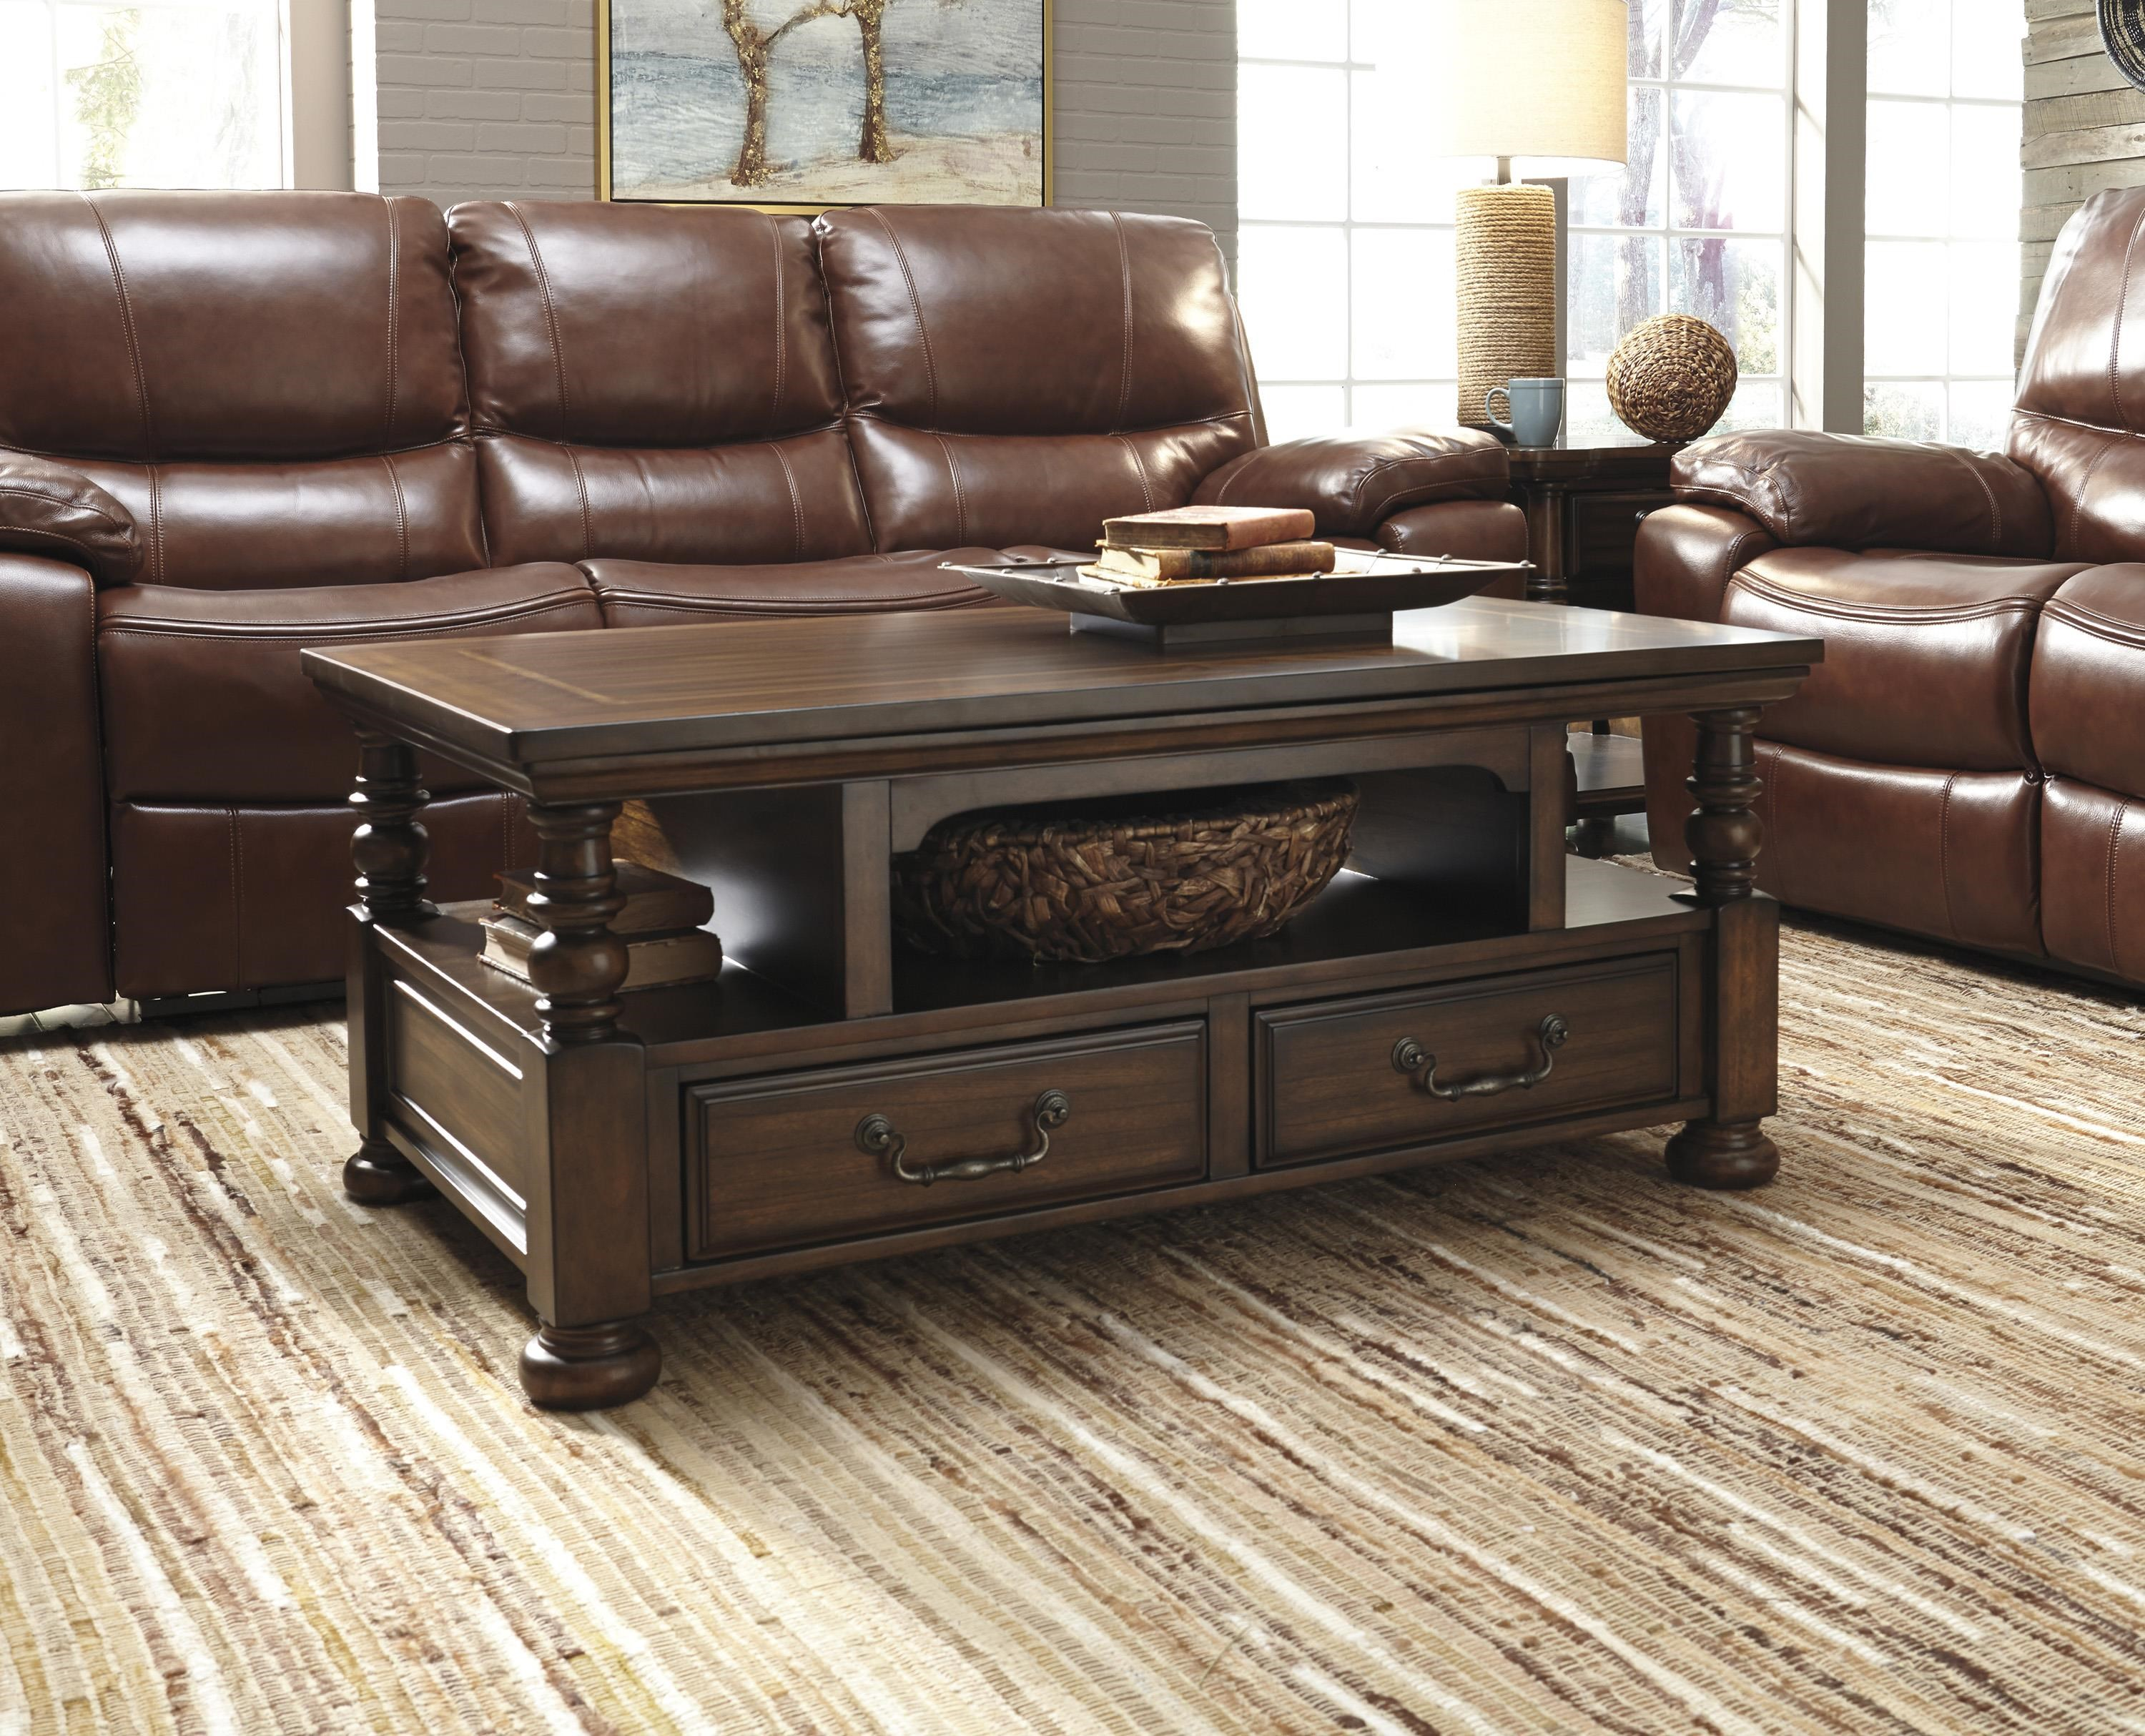 Signature Design by Ashley T638 Cocktail Table - Ivan Smith Furniture - Cocktail or Coffee Table